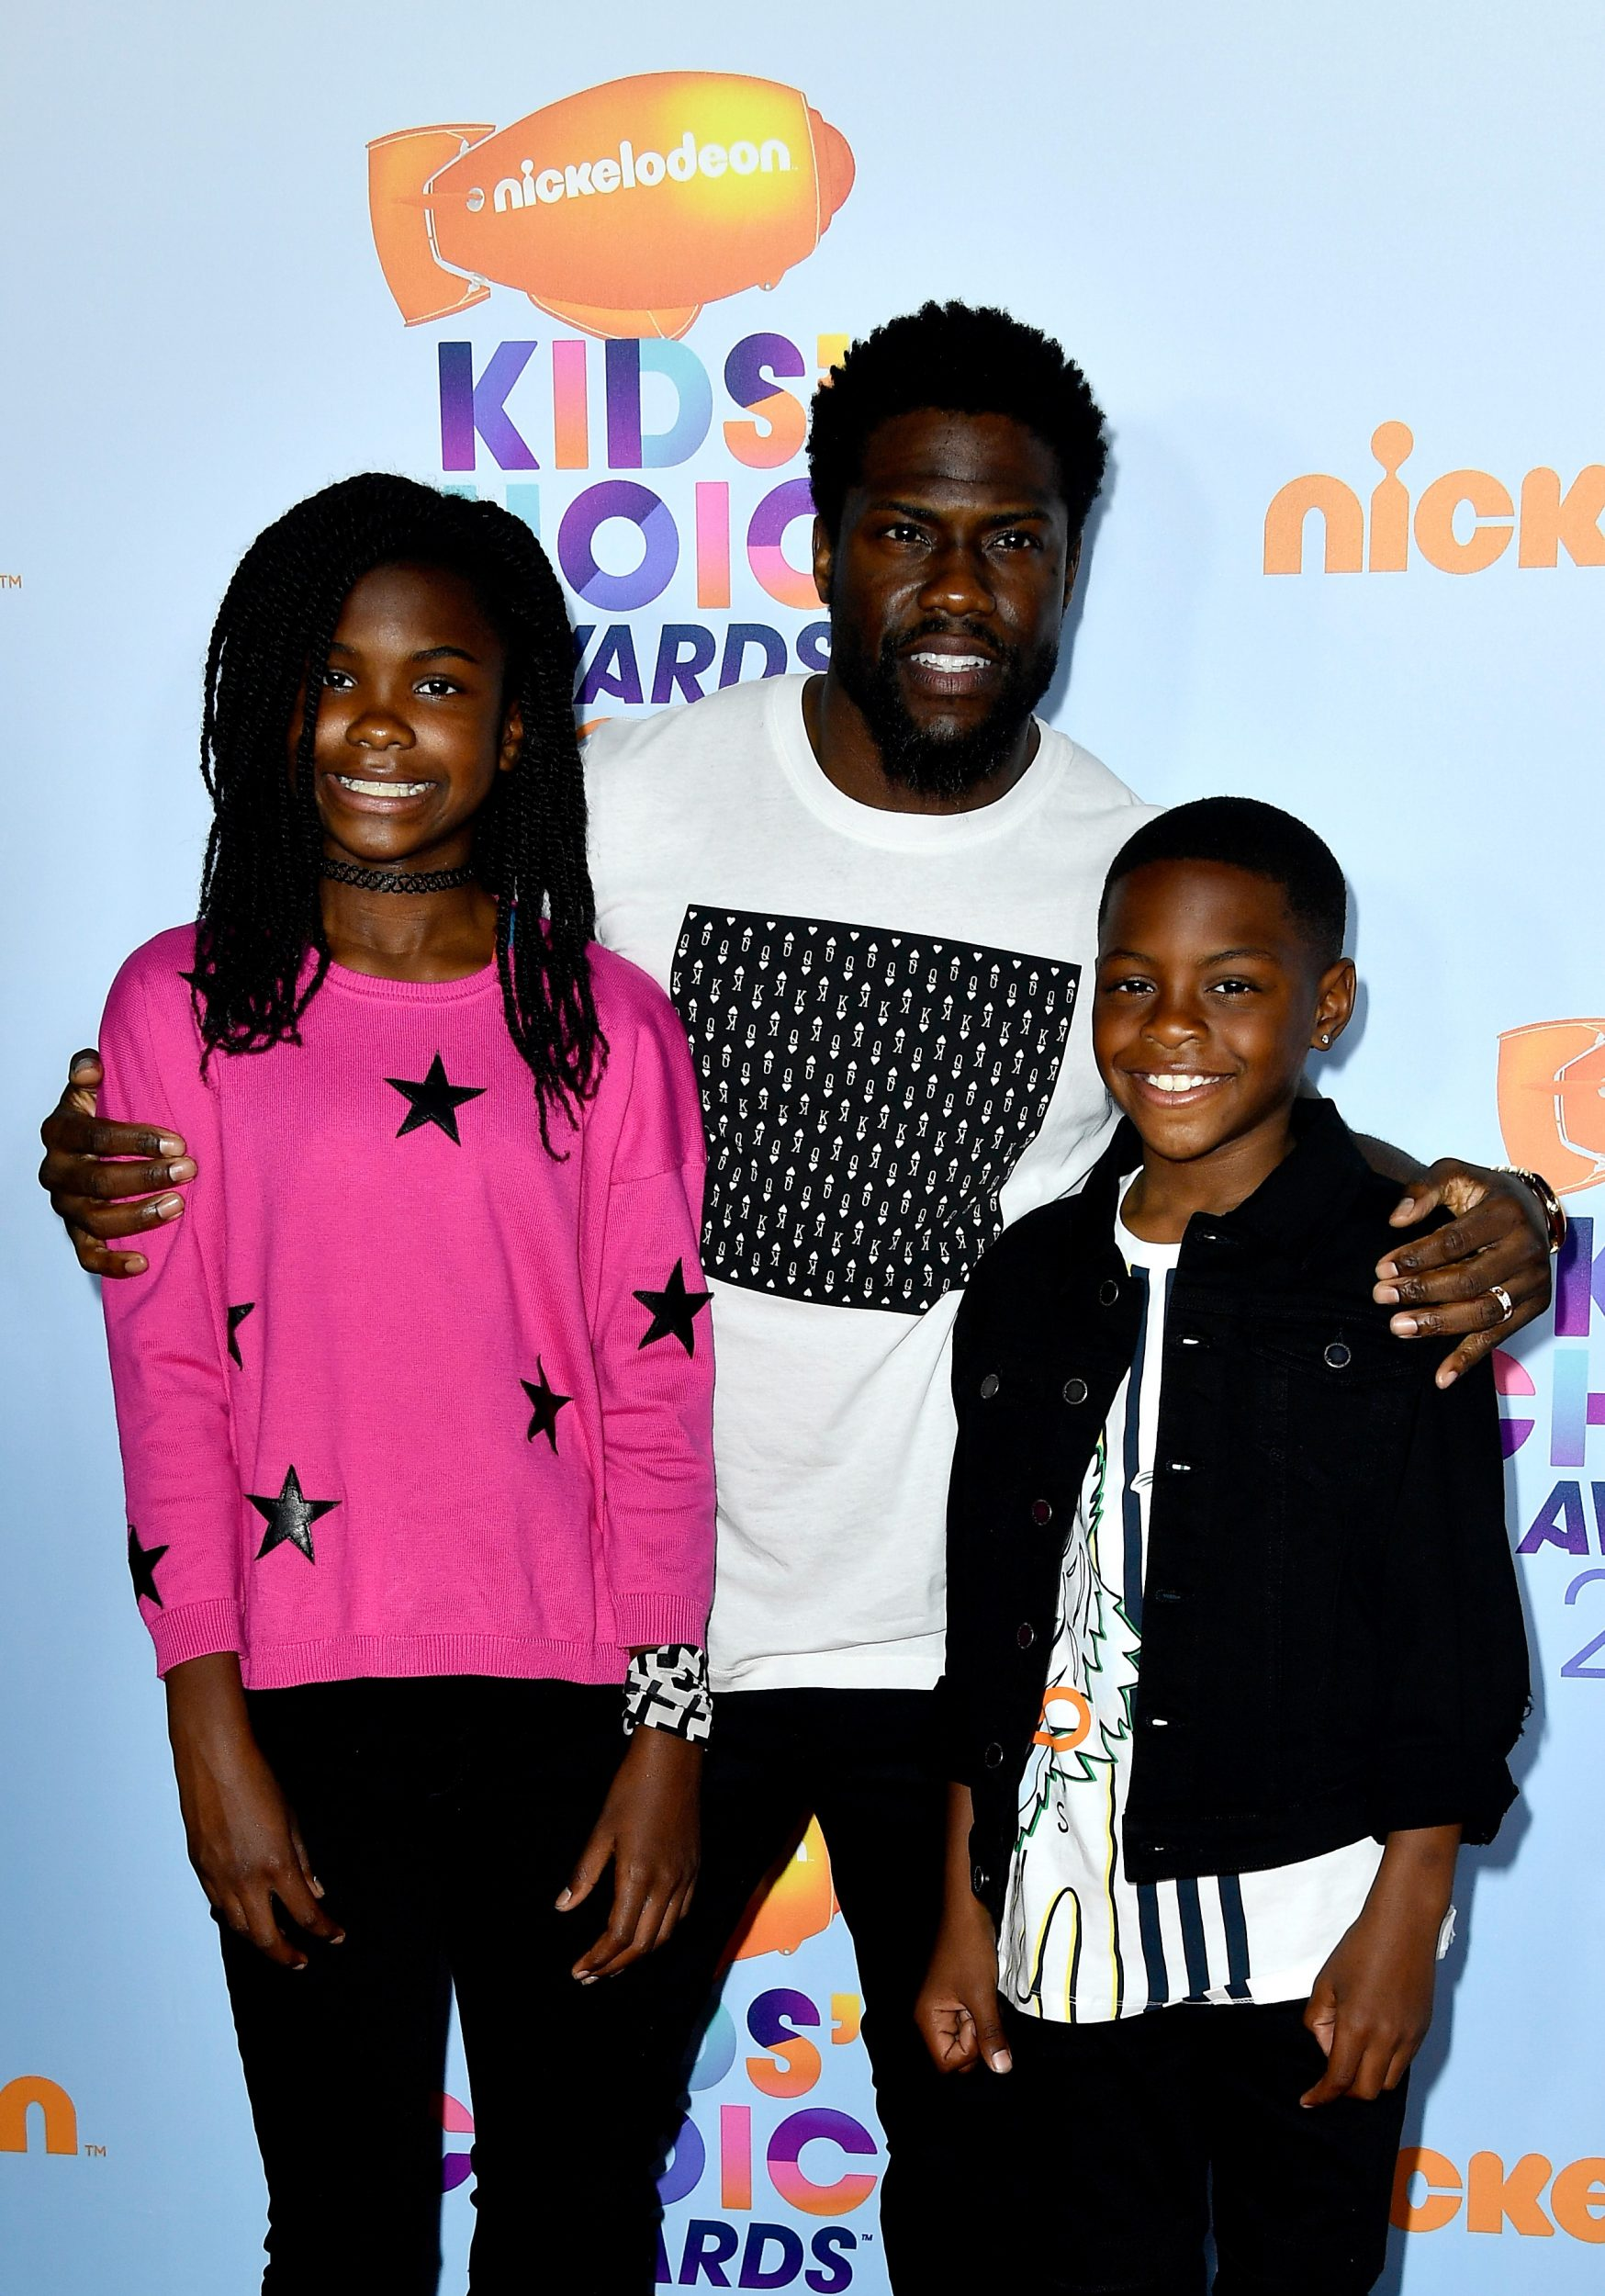 LOS ANGELES, CA - MARCH 11:  Actor Kevin Hart (C) with Heaven Hart and Hendrix Hart at Nickelodeon's 2017 Kids' Choice Awards at USC Galen Center on March 11, 2017 in Los Angeles, California.  (Photo by Frazer Harrison/Getty Images - Issued to Media by Nickelodeon)